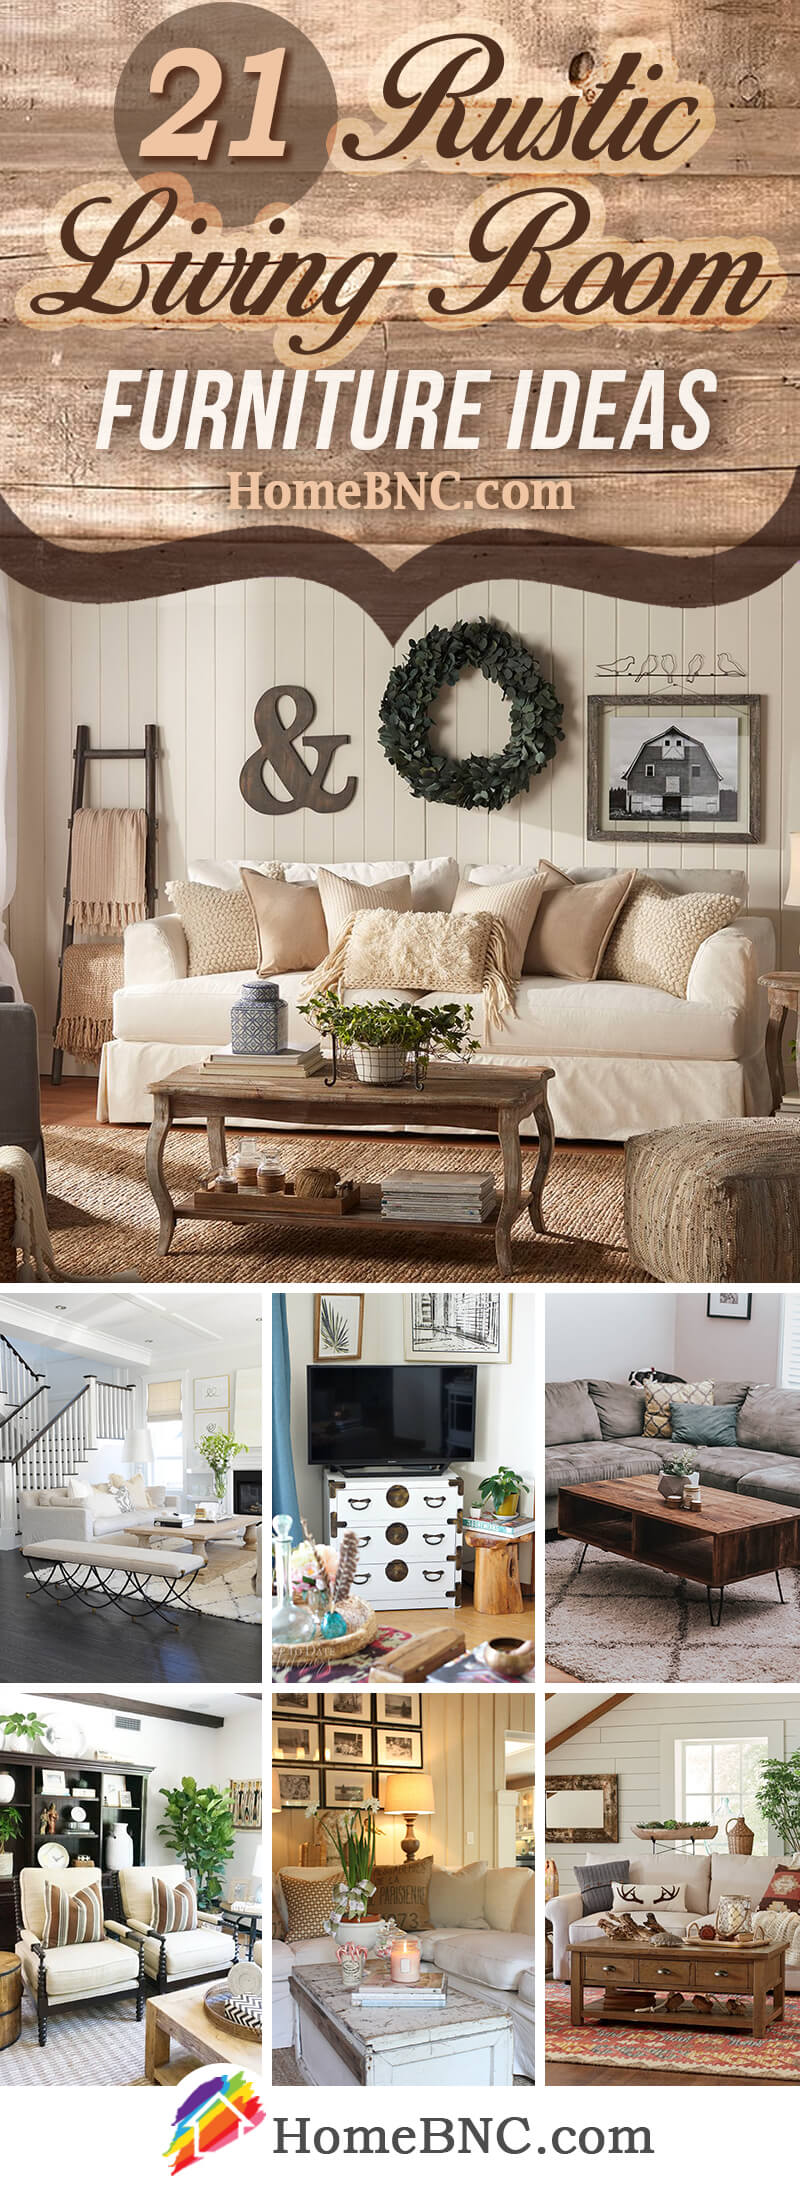 rustic living room furniture ideas pinterest share homebnc v2